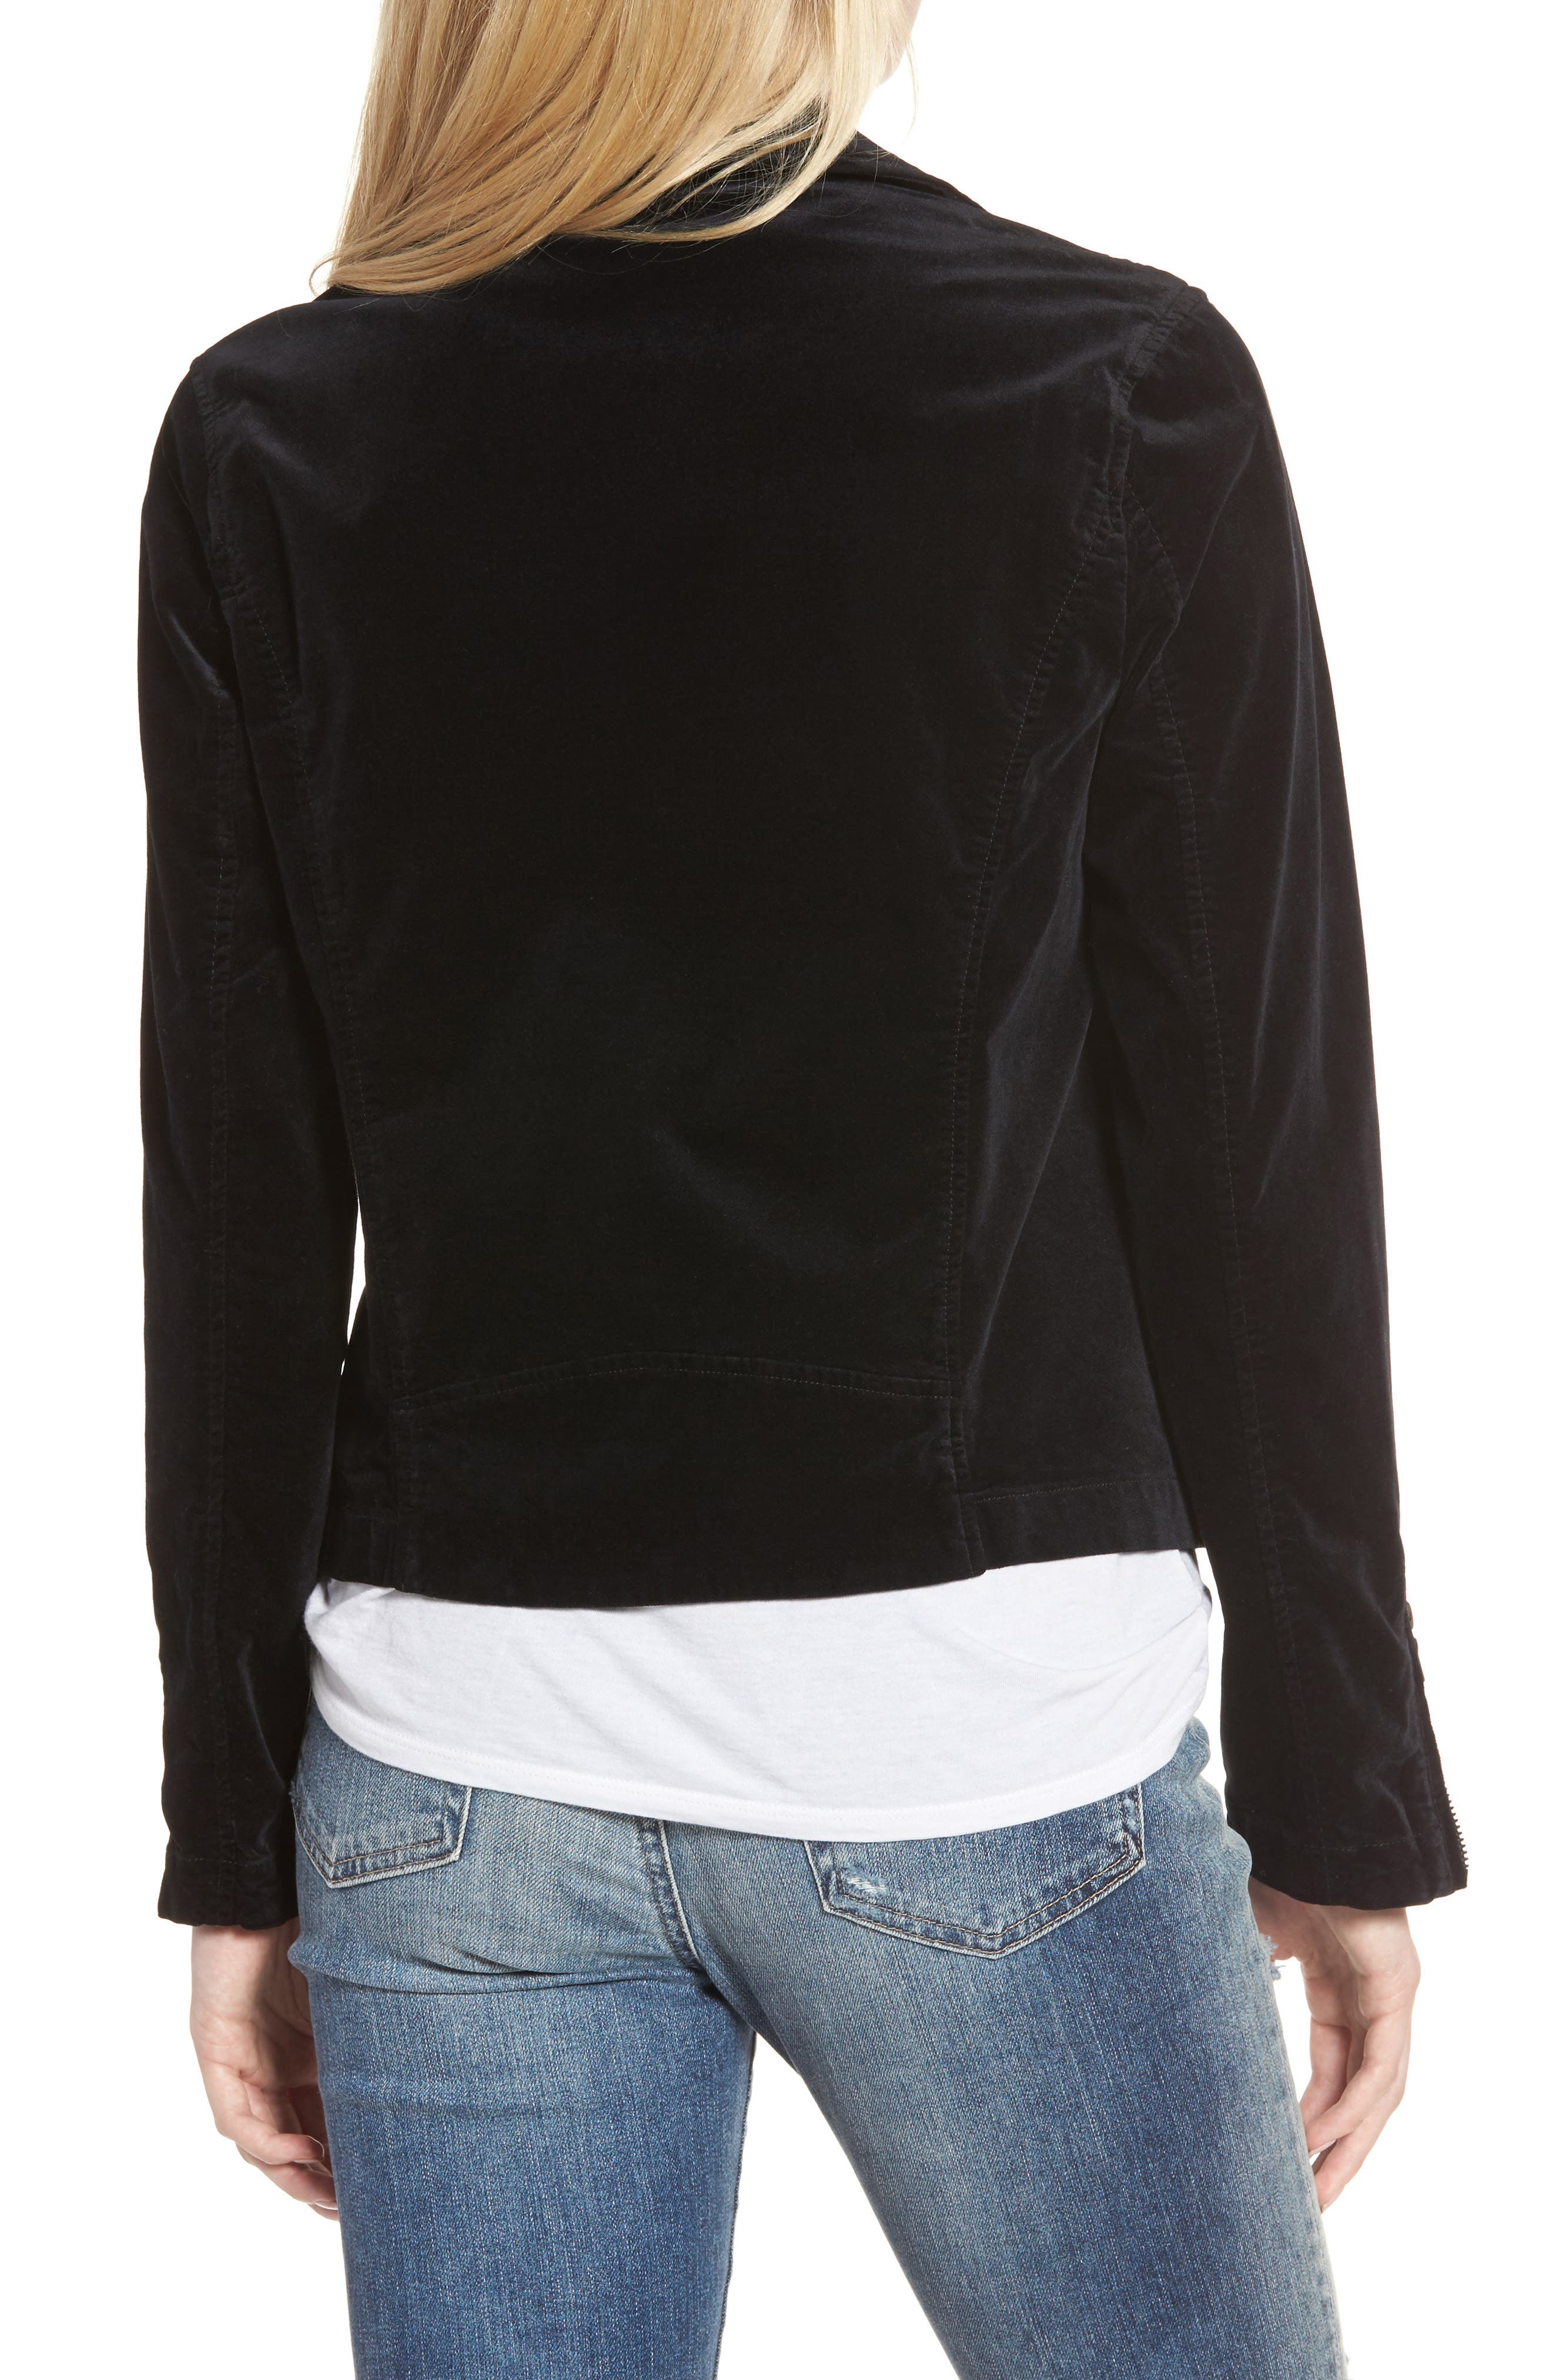 Quincy Velvet Biker Jacket,                             Alternate thumbnail 2, color,                             001